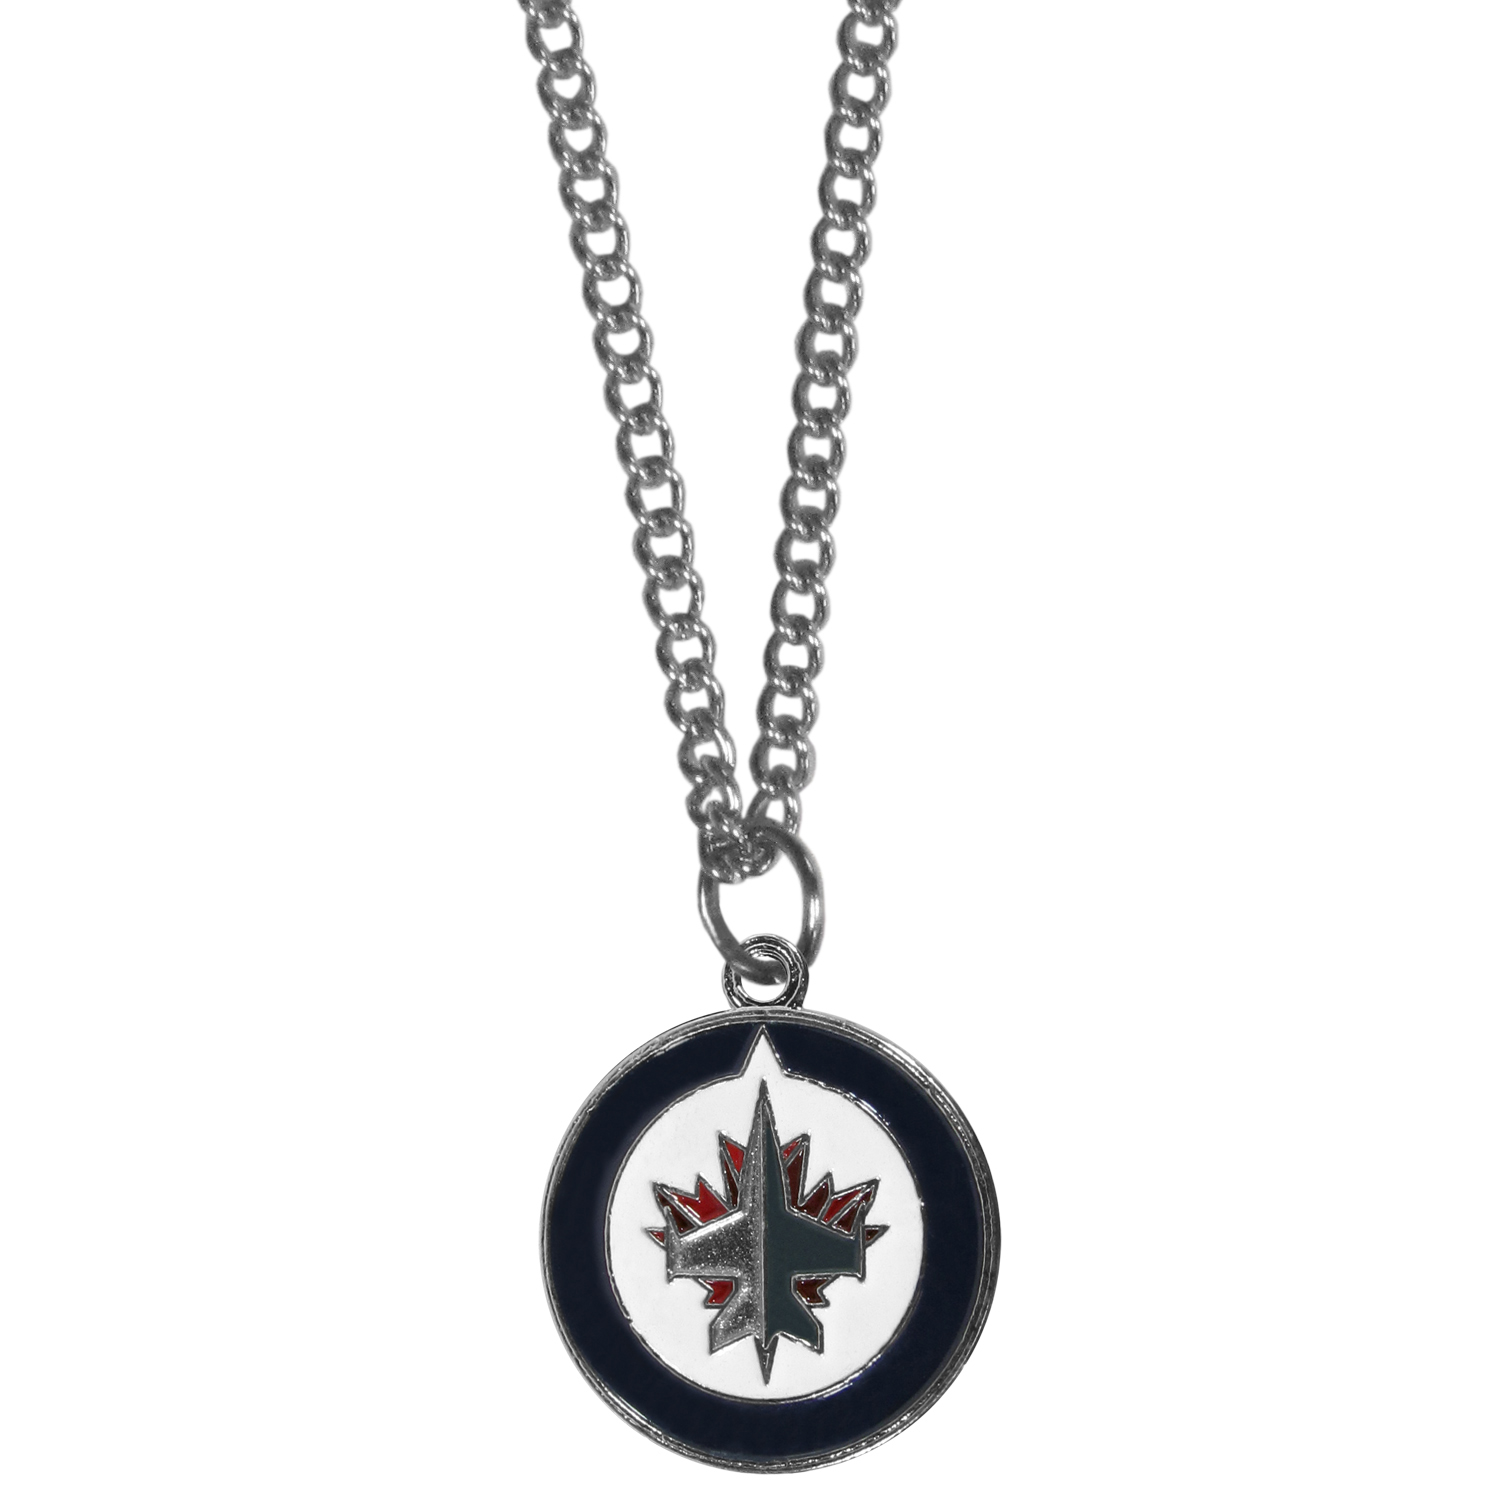 Winnipeg Jets™ Chain Necklace - Make a statement with our chain necklaces. The 22 inch chain features a fully cast, metal Winnipeg Jets™ pendant with vivid enameled details. Perfect accessory for game day and nice enough to wear everyday!